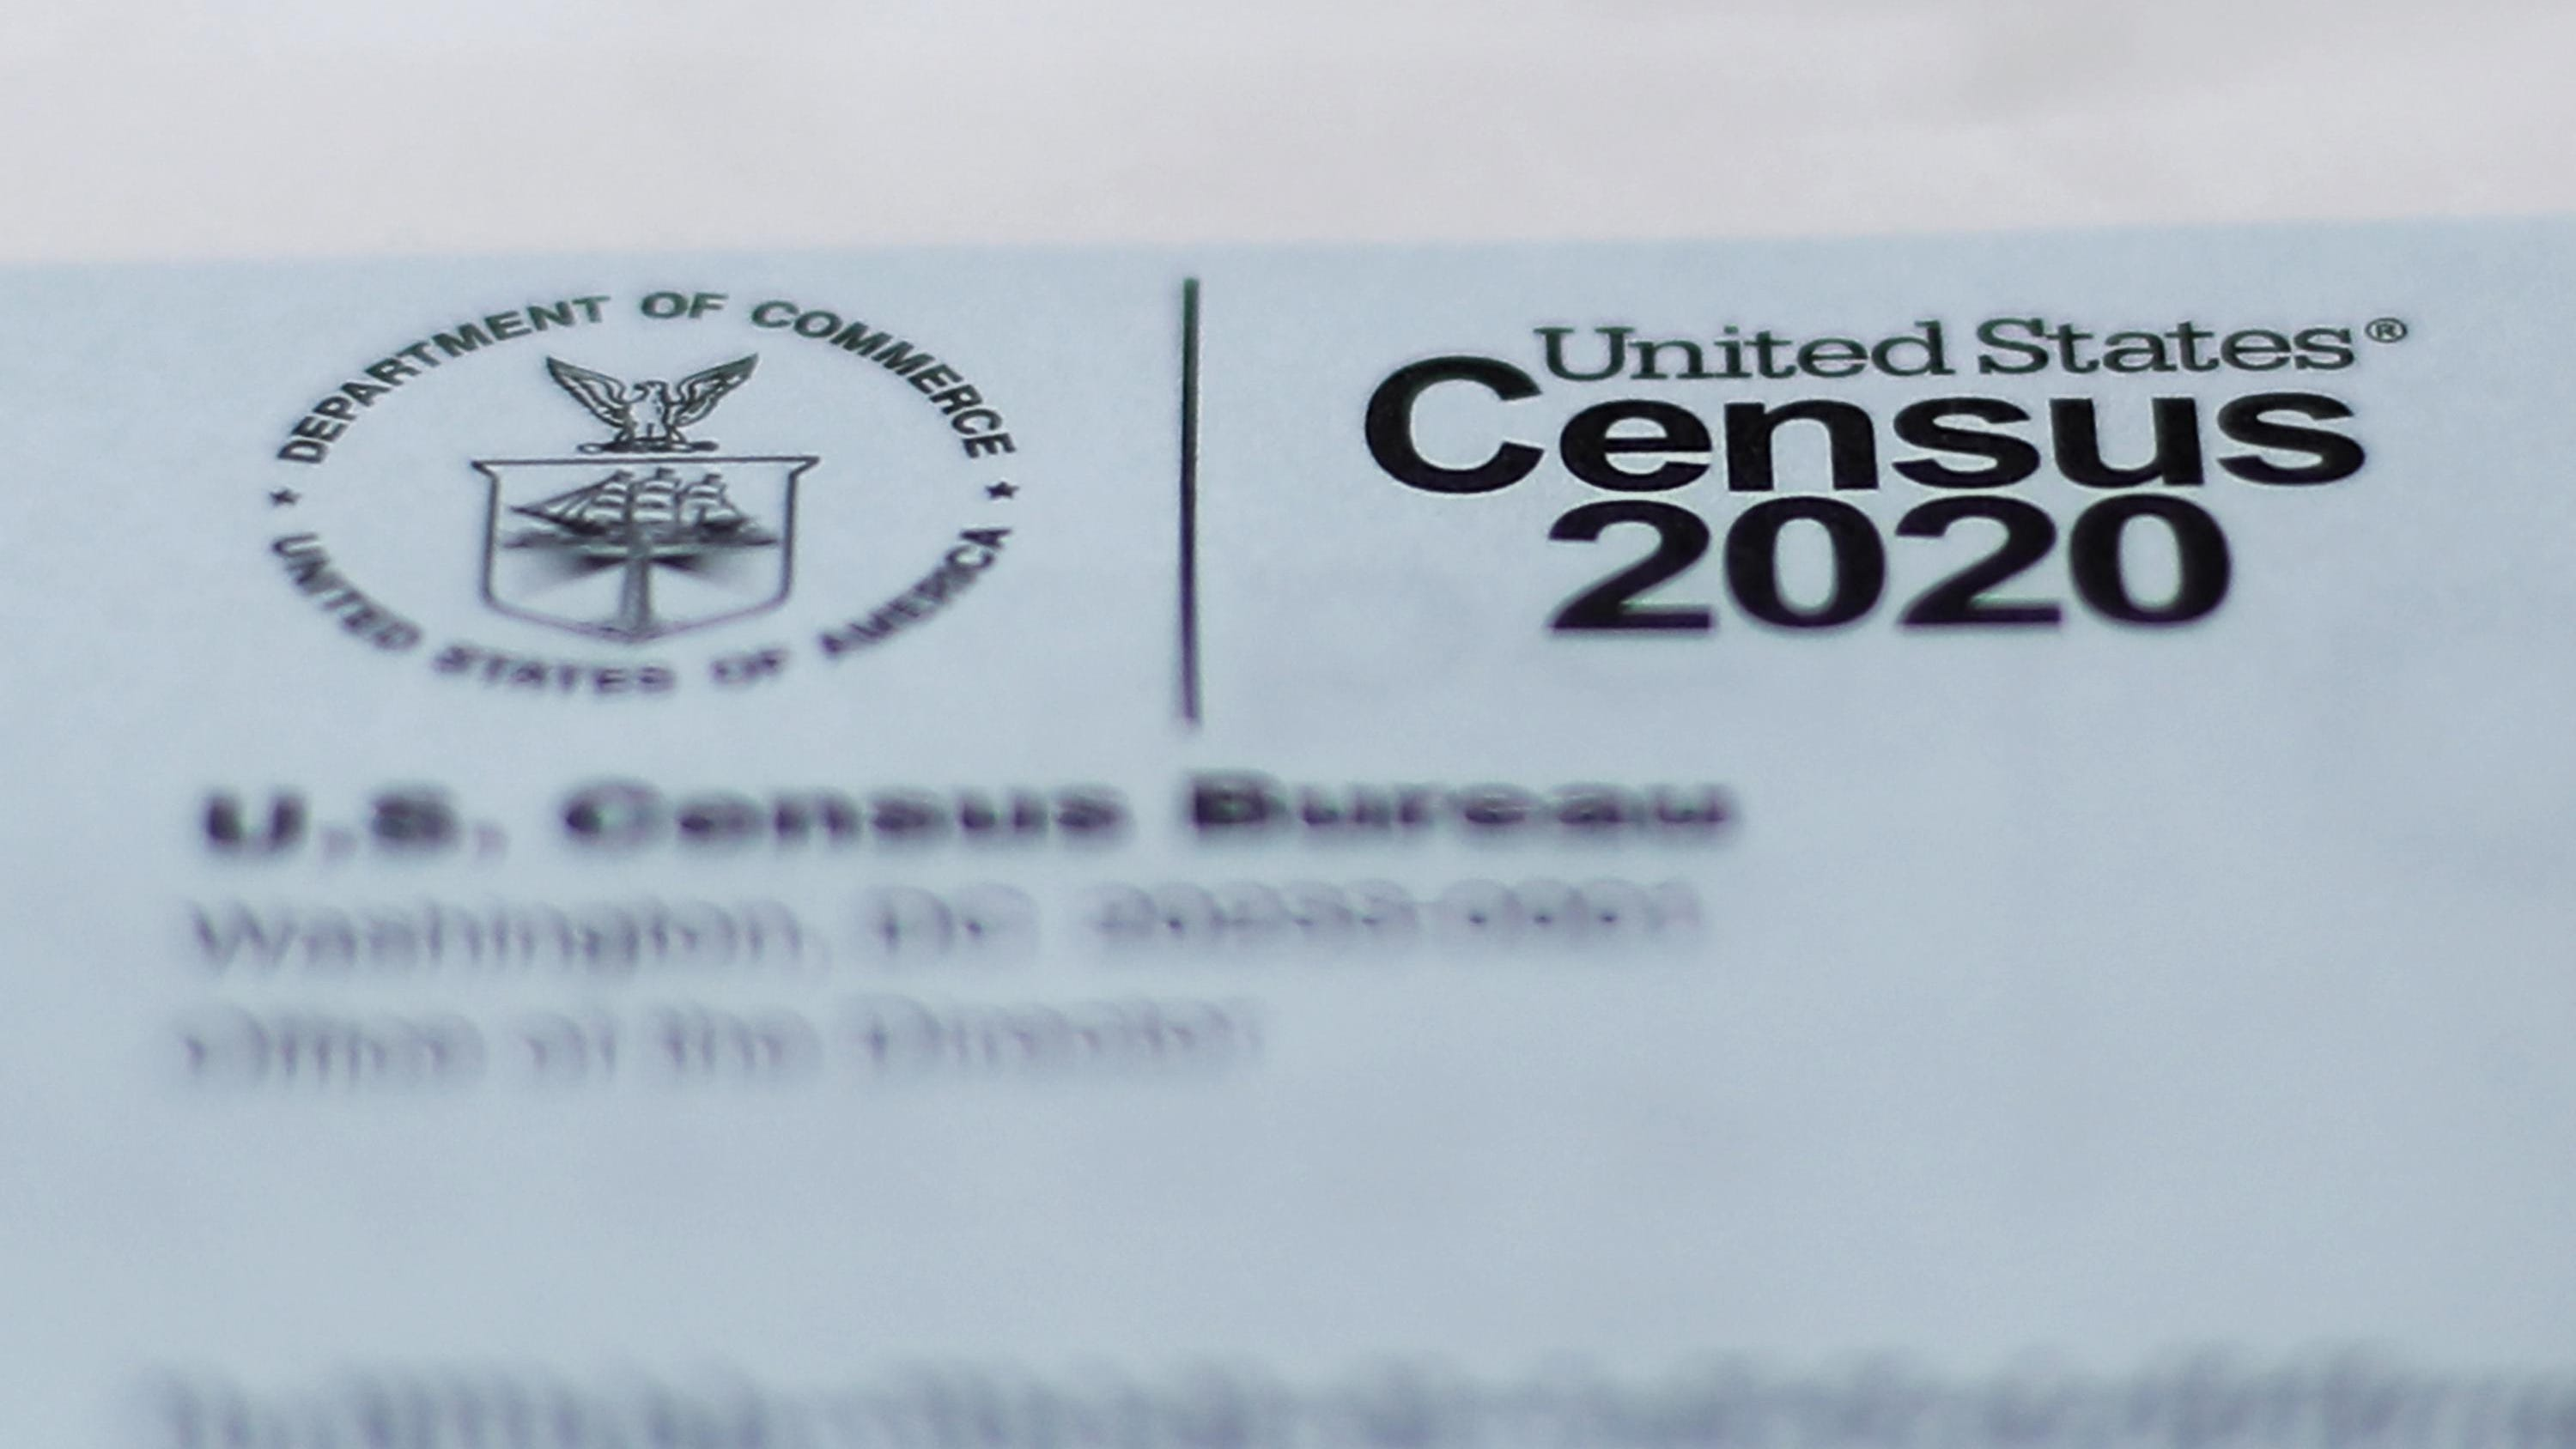 A 2020 census letter mailed to a U.S. resident.